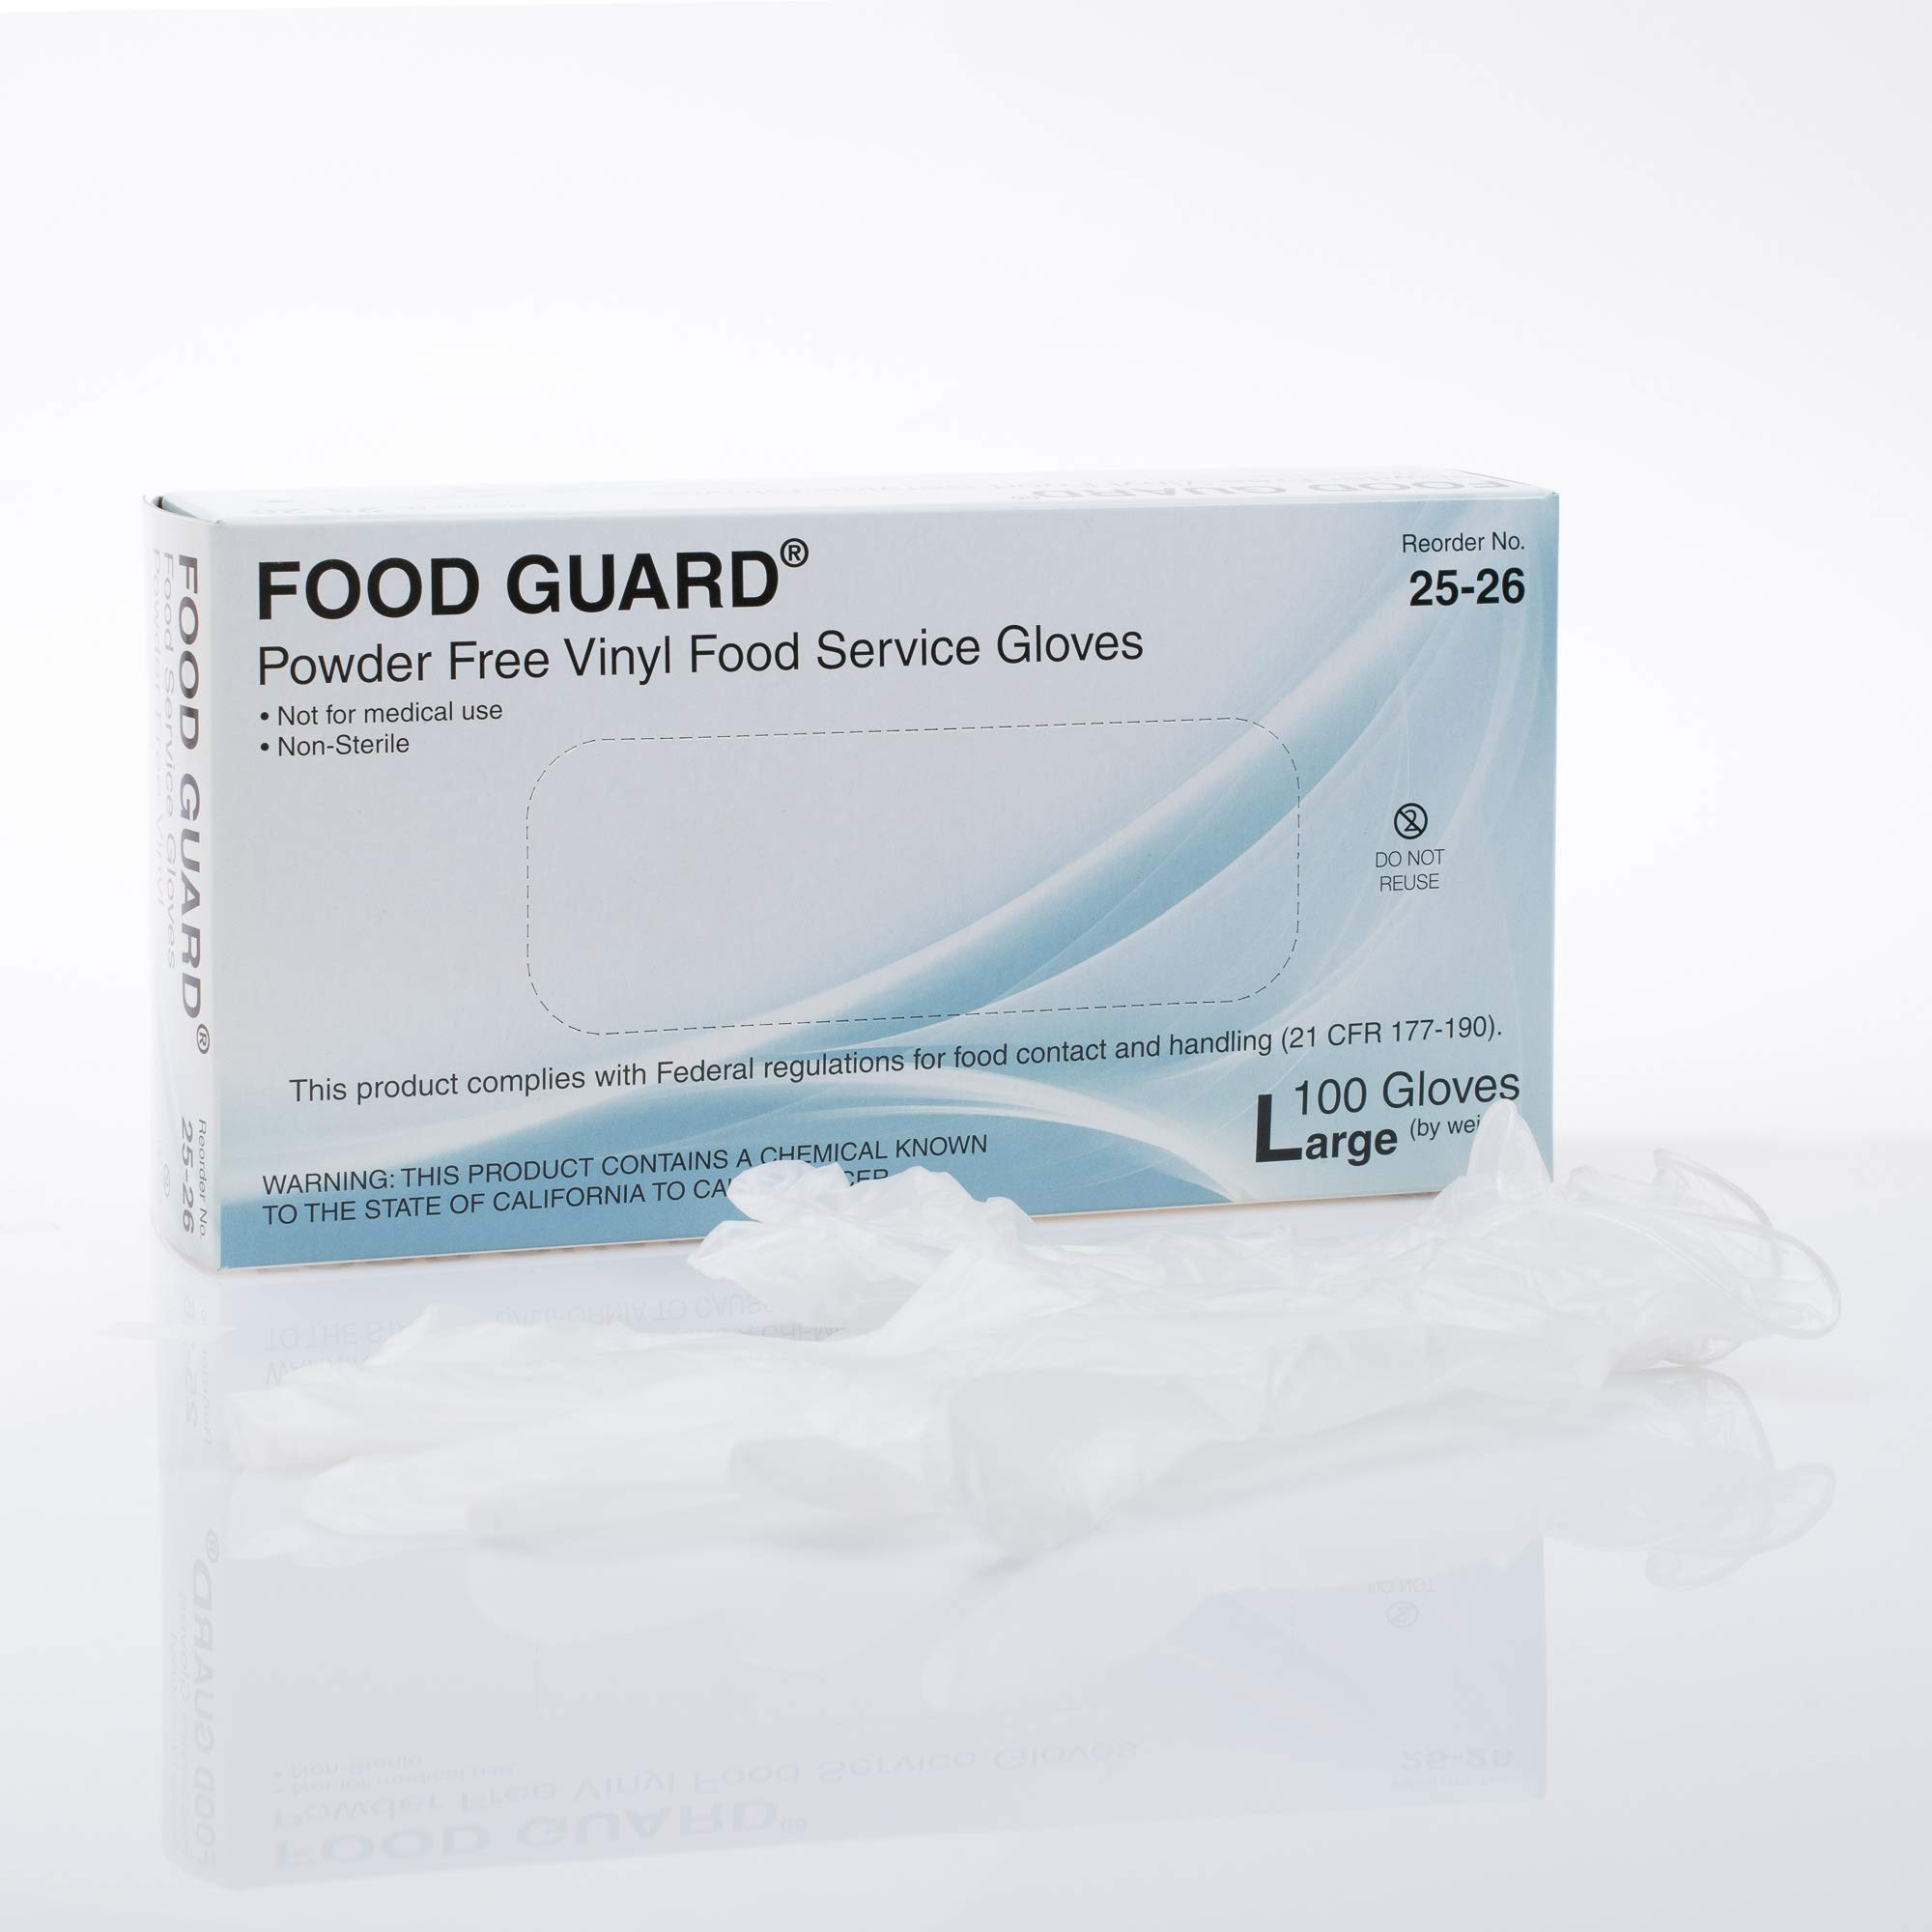 Food Guard Food Service Glove Vinyl Powder Free Large 25-26 20 Boxes, 100 /Box